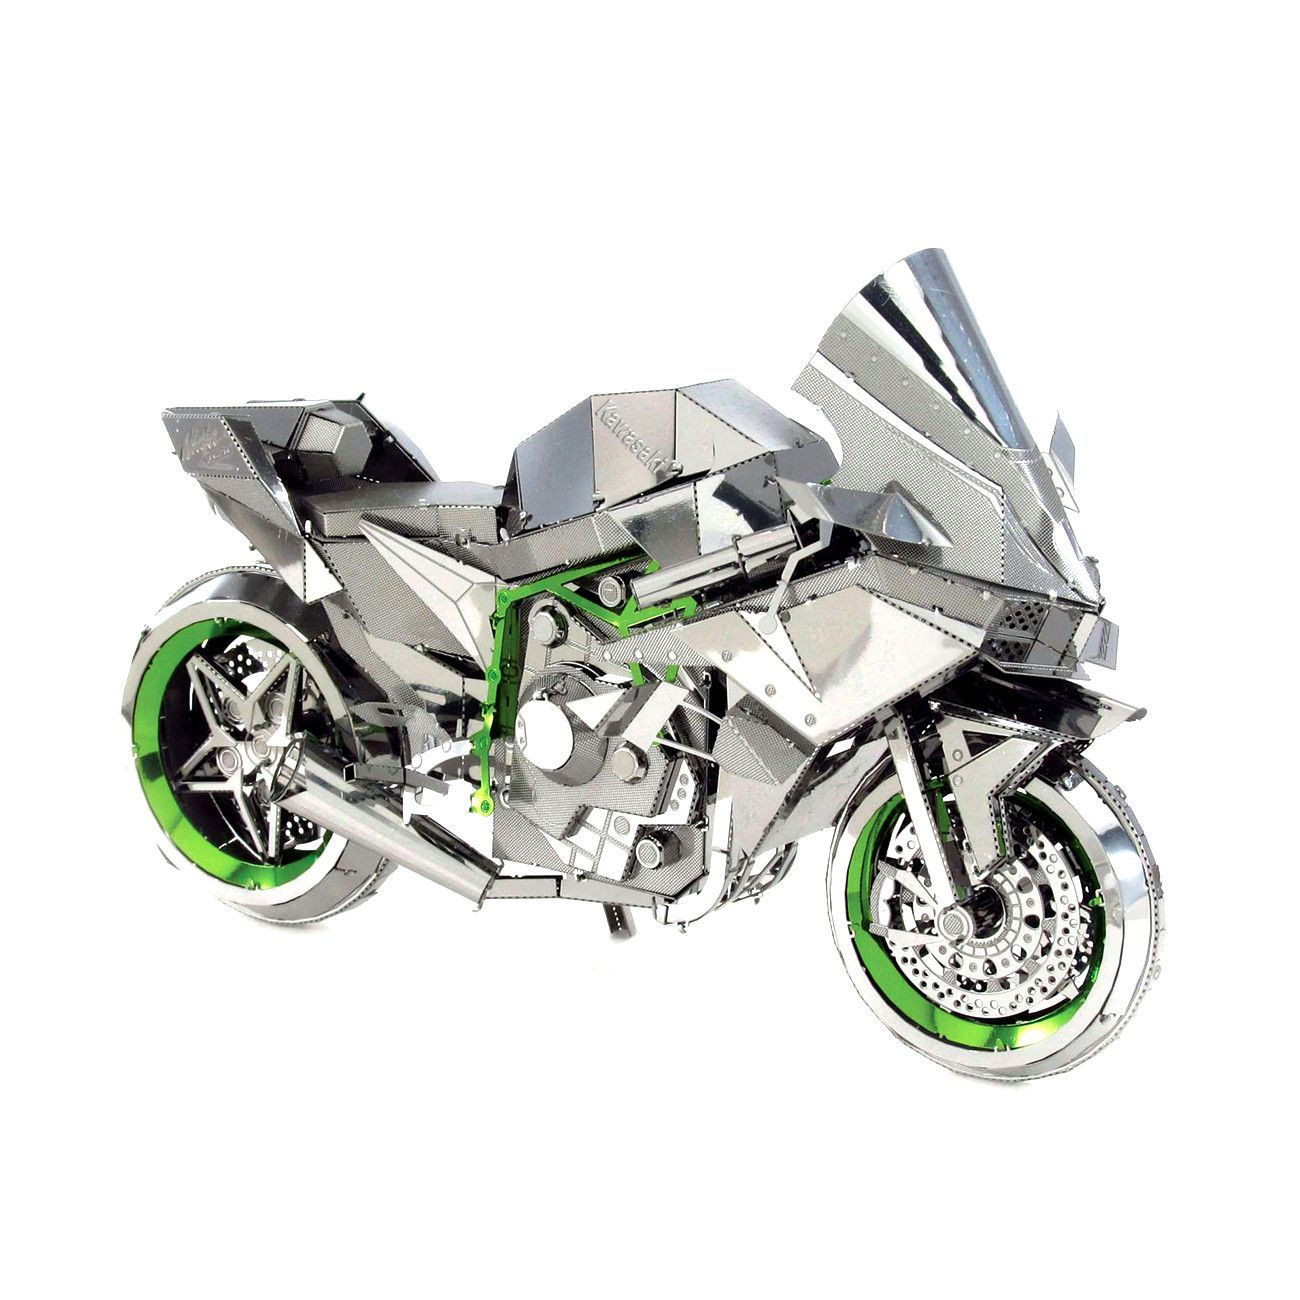 Metal earth iconx 3d laser cut model kit kawasaki ninja h2r metal earth iconx 3d laser cut model kit kawasaki ninja h2r motorcycle solutioingenieria Images